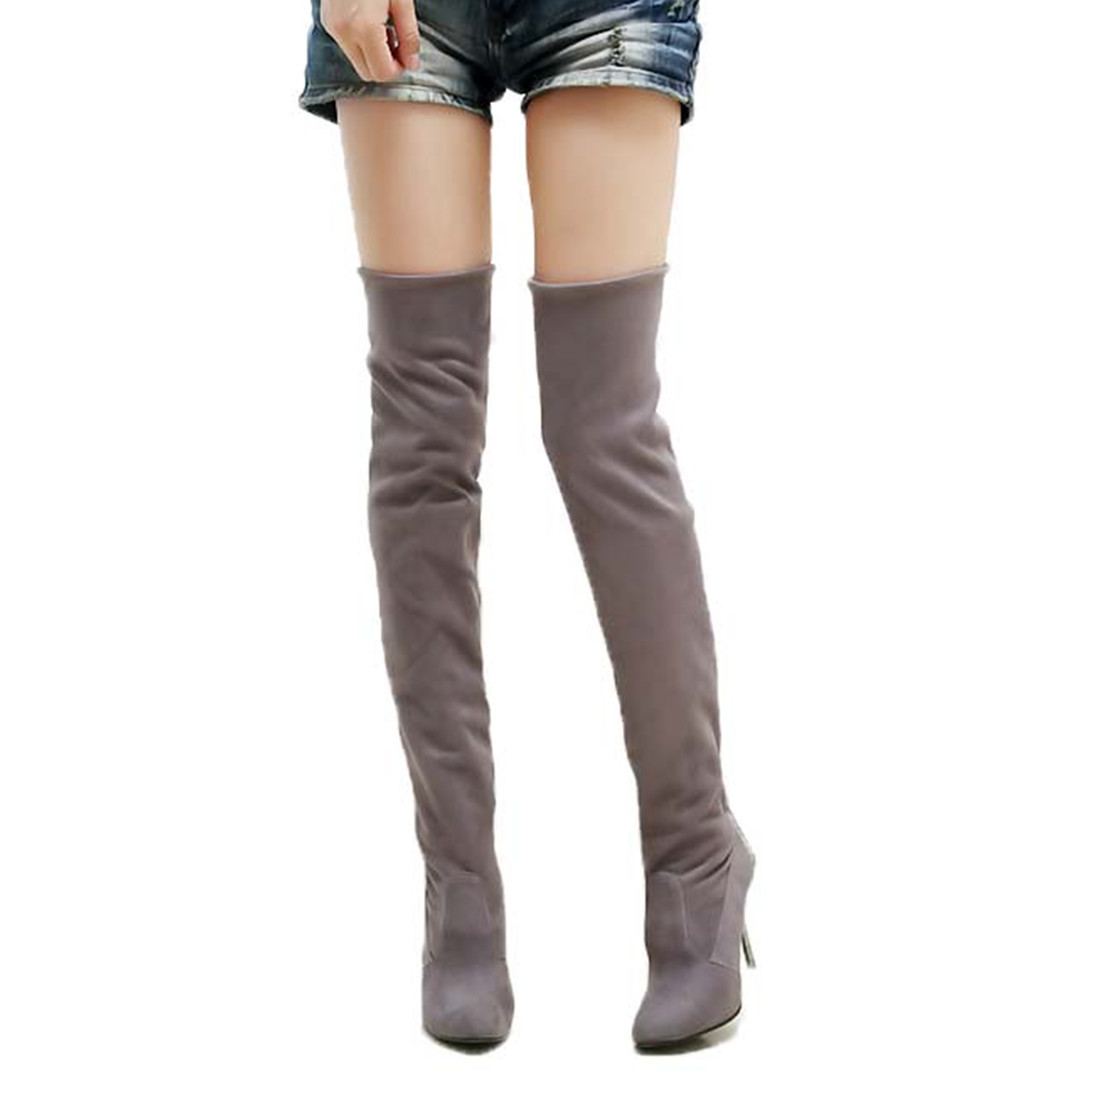 Women's Thigh High Boots Price, Women's Thigh High Boots ...